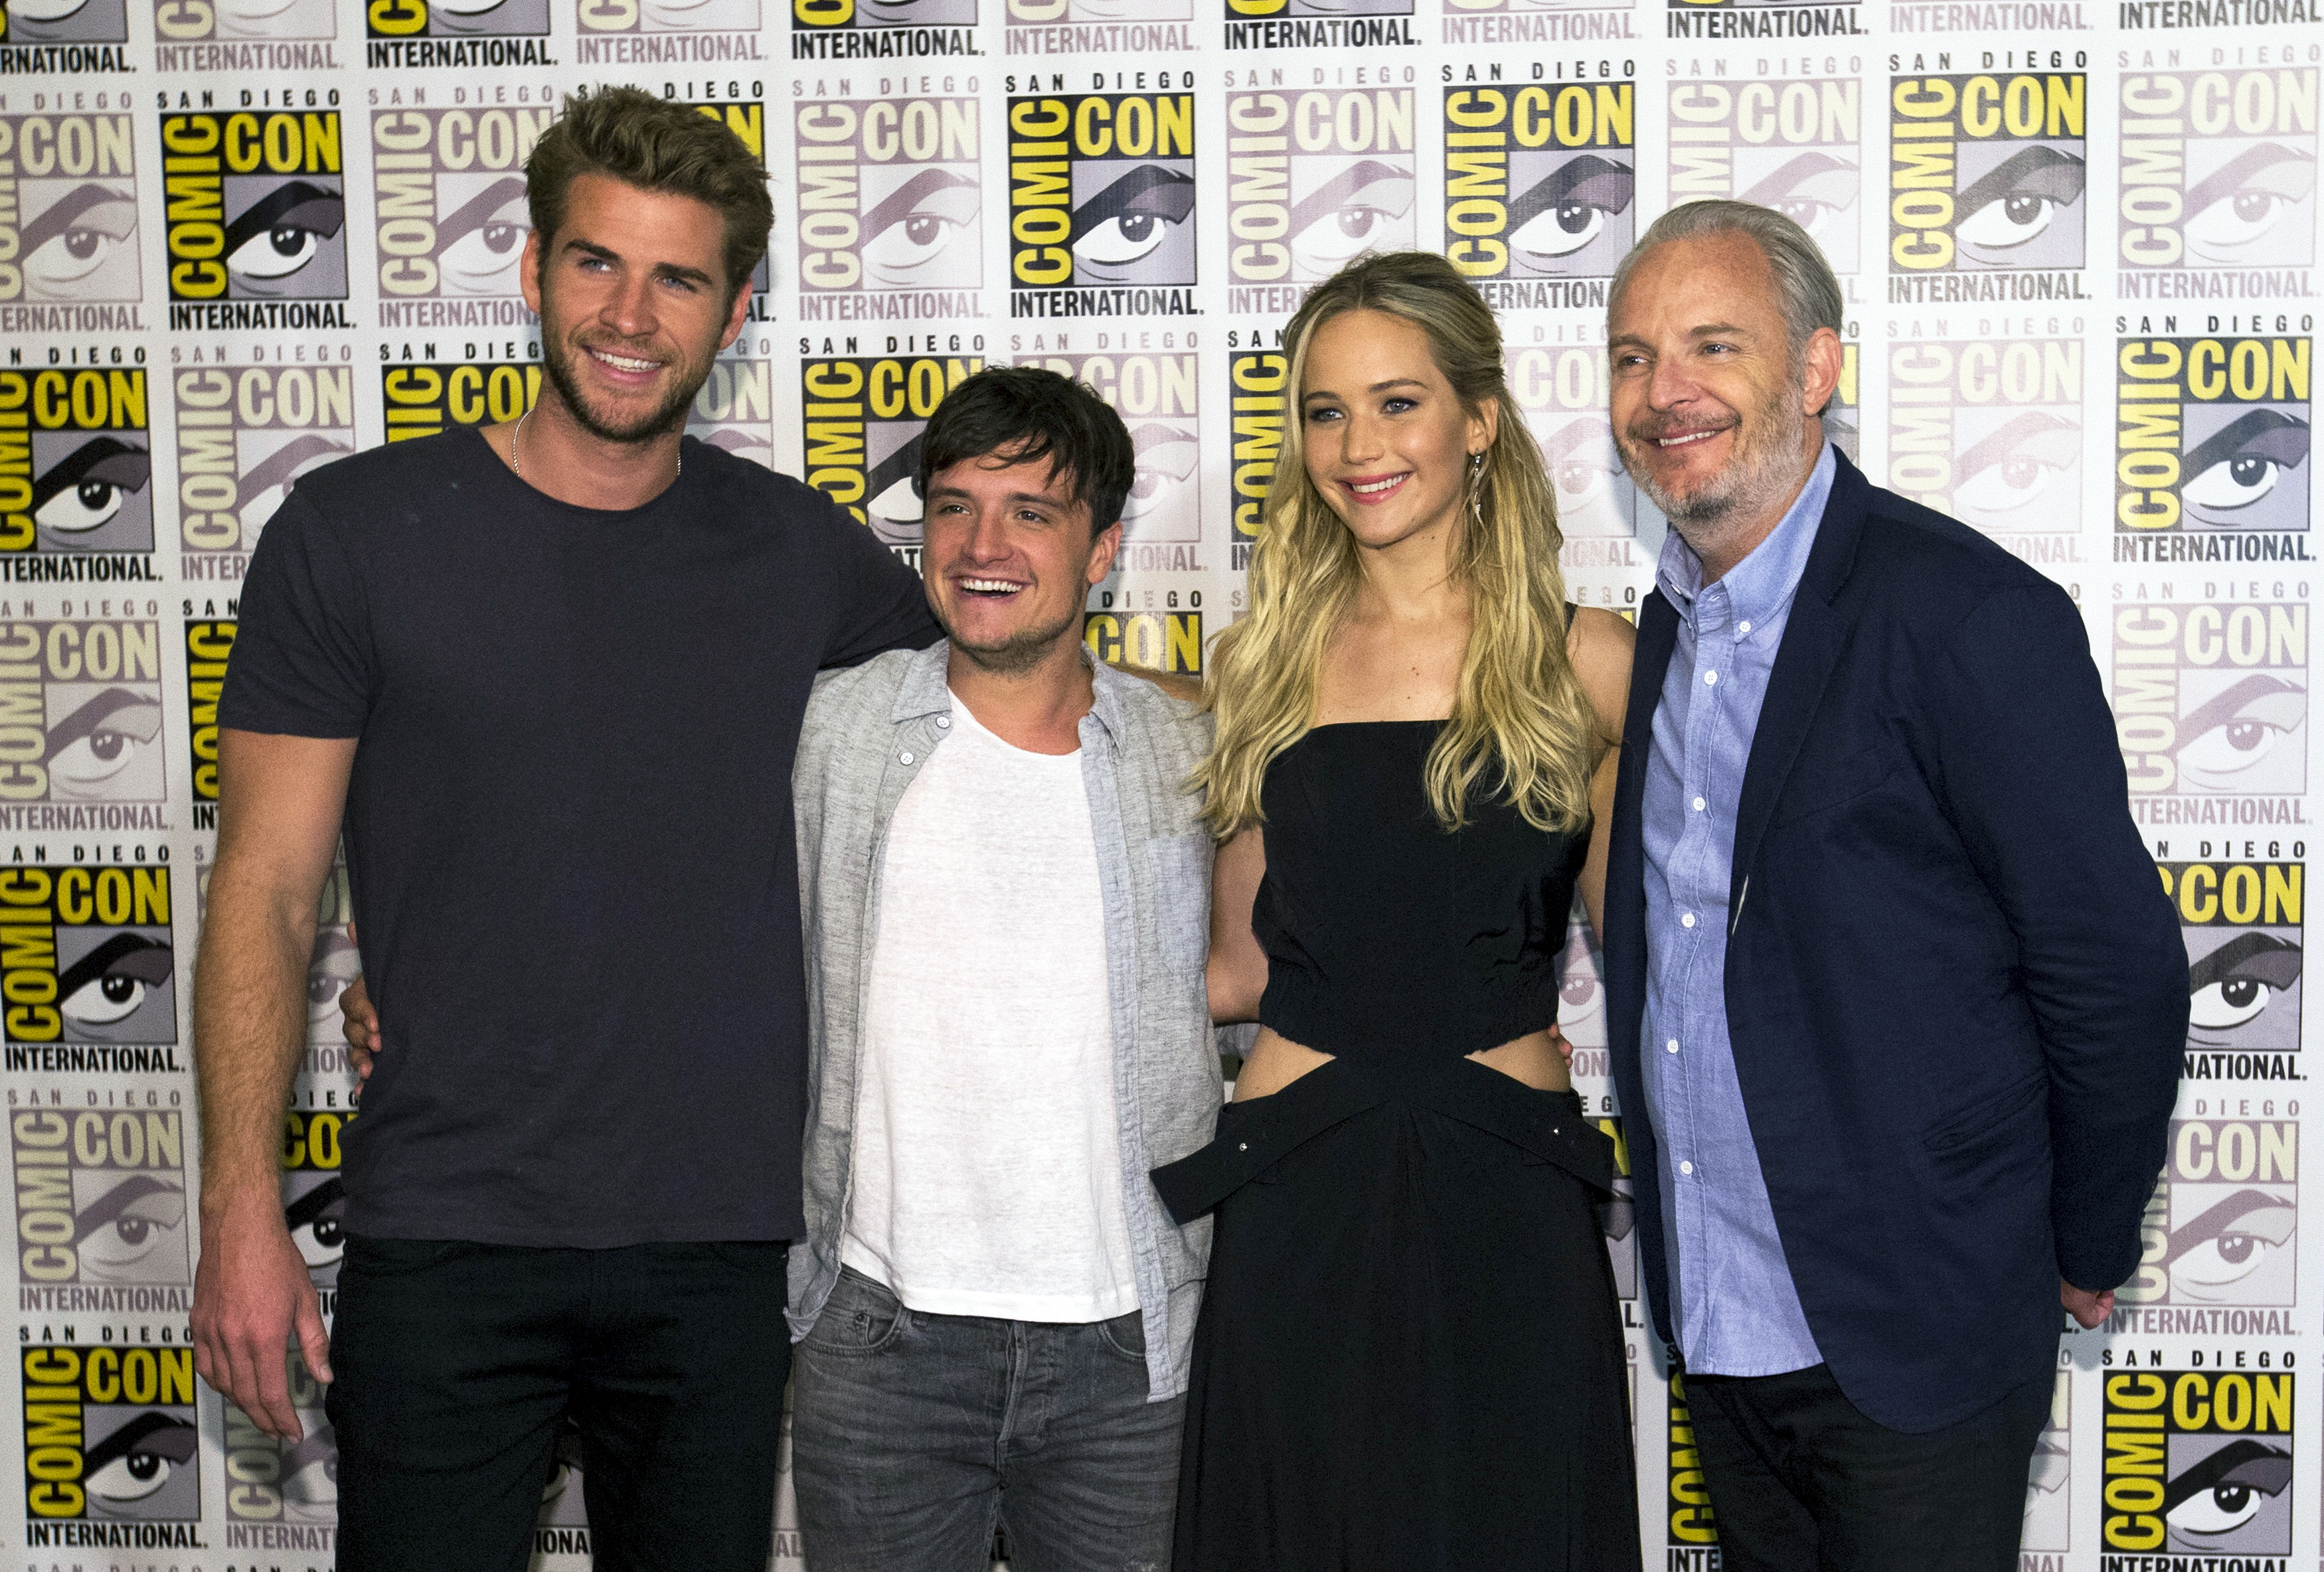 Director of <i>The Hunger Games: Mockingjay - Part 1 &amp; 2</i> Francis Lawrence poses with cast members Jennifer Lawrence, Josh Hutcherson and Liam Hemsworth during the 2015 Comic-Con International Convention on July 9, 2015 in San Diego, Calif.